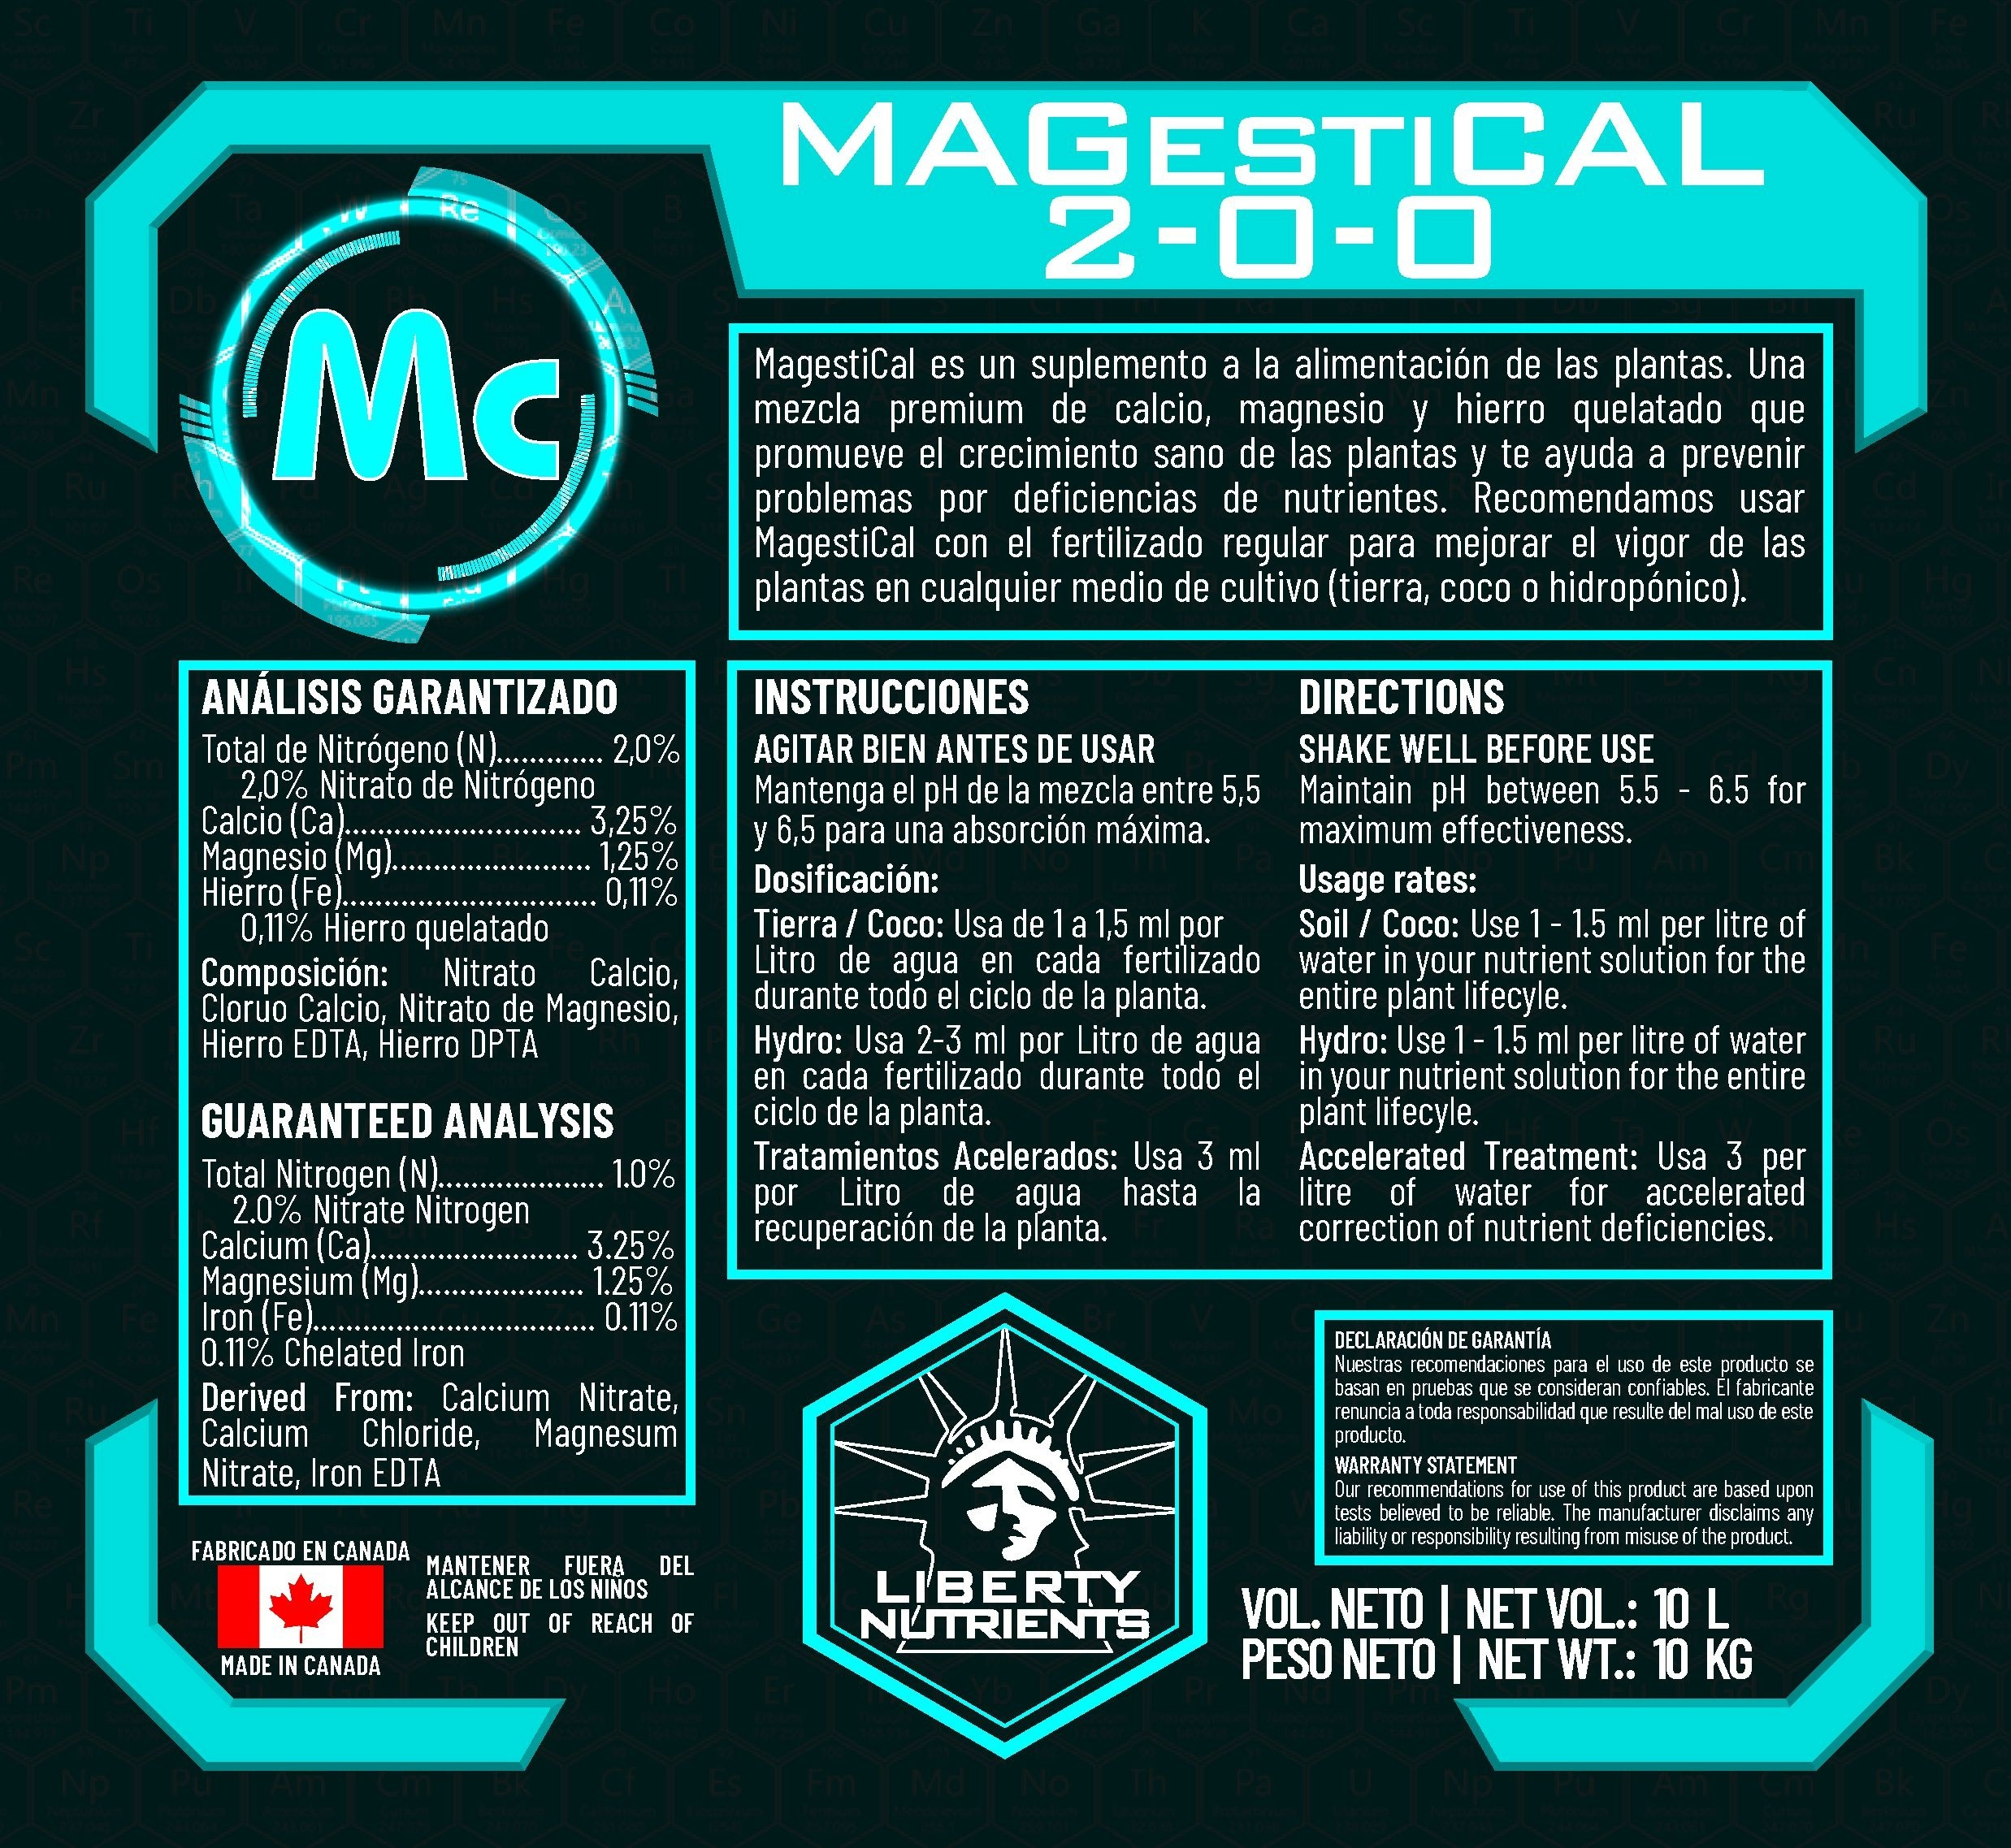 Magestical - Liberty Nutrients